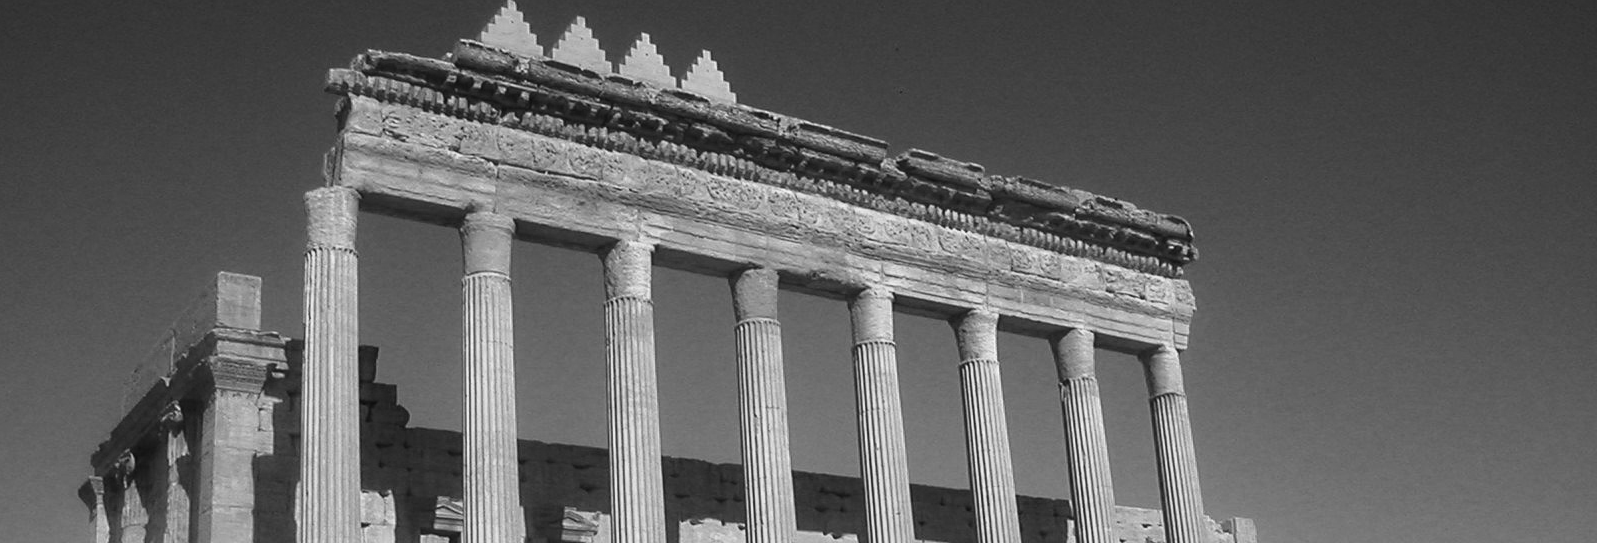 Baalbek (Lebanon) – Training in building preservation and presentation of archaeological architecture